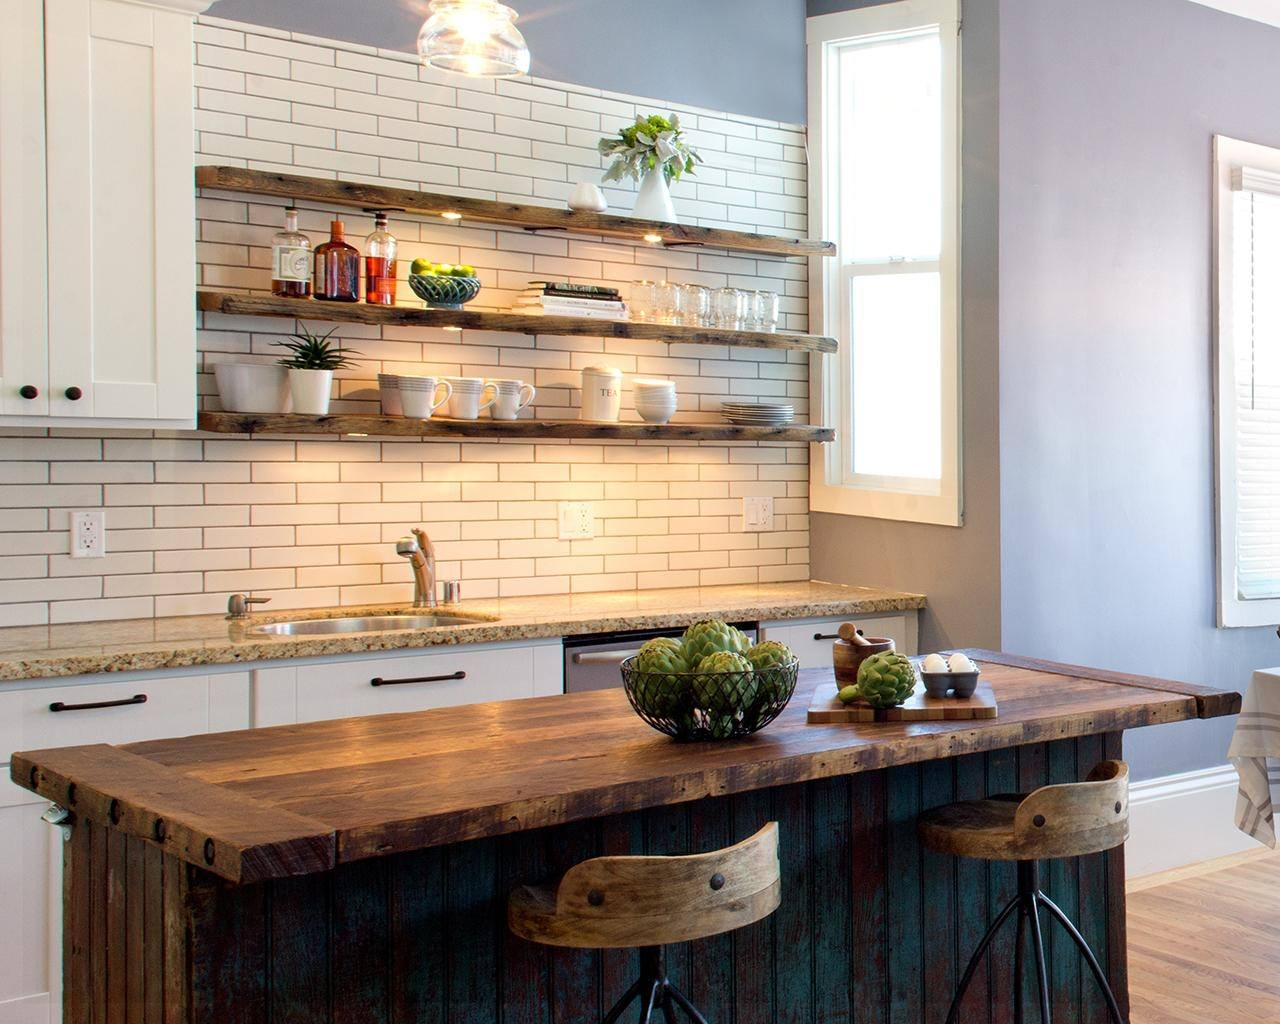 10 Open Shelving Kitchen Specially Picked Styles | Decor Or Design